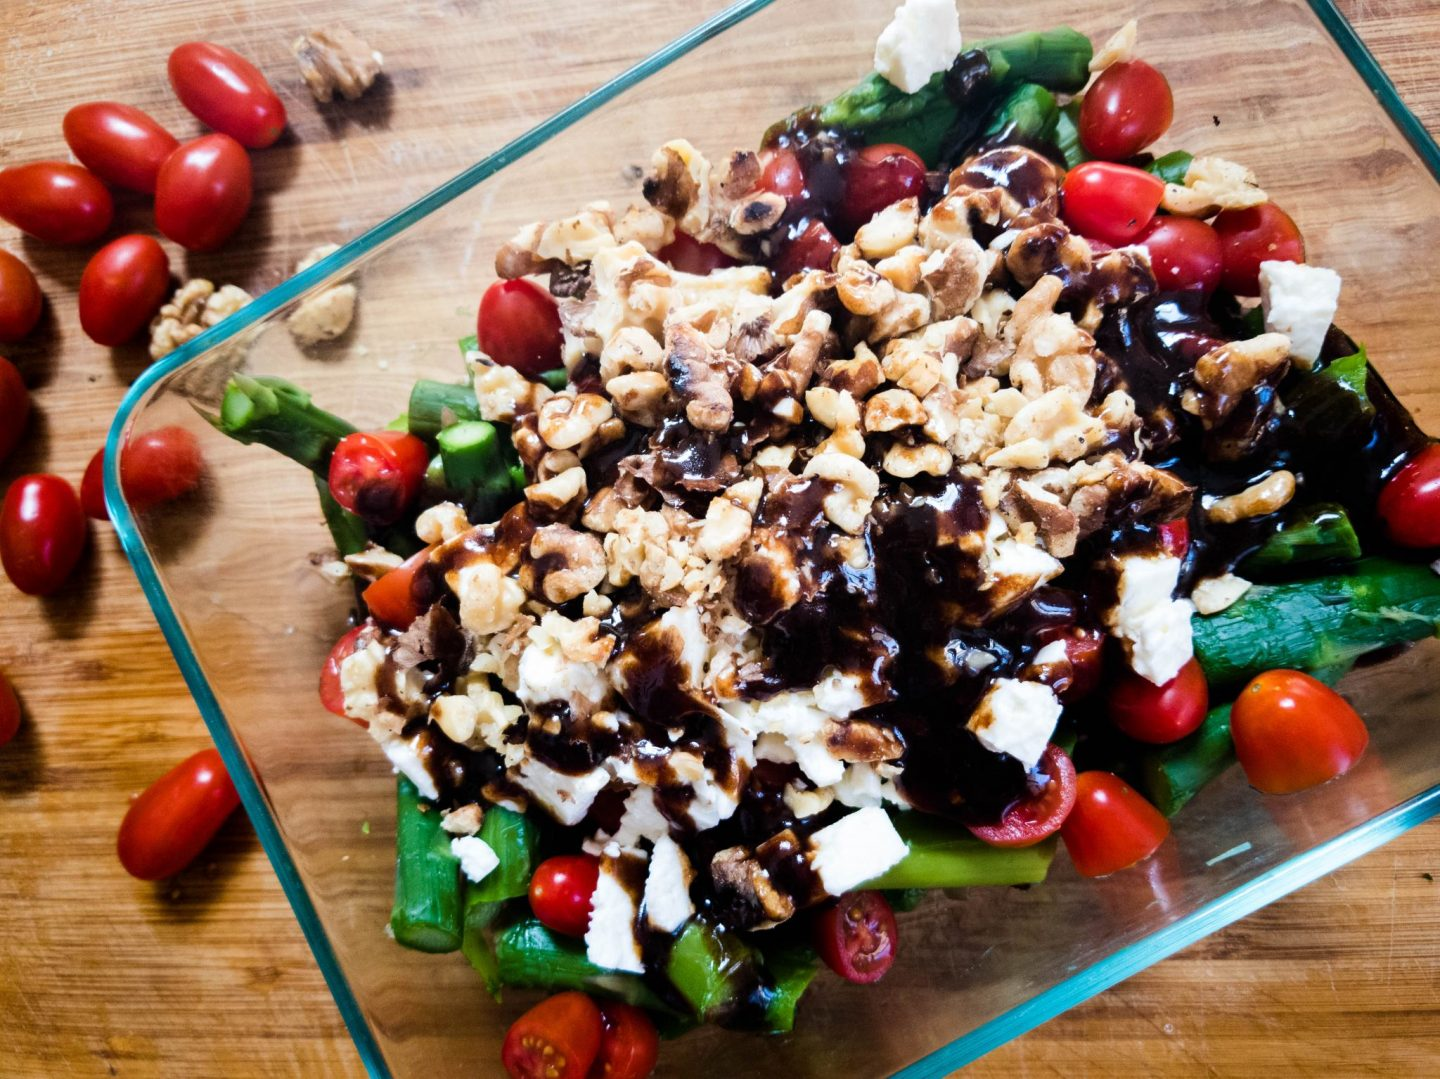 Asparagus Salad with Feta, Tomatoes, Walnuts and Balsamic Vinaigrette